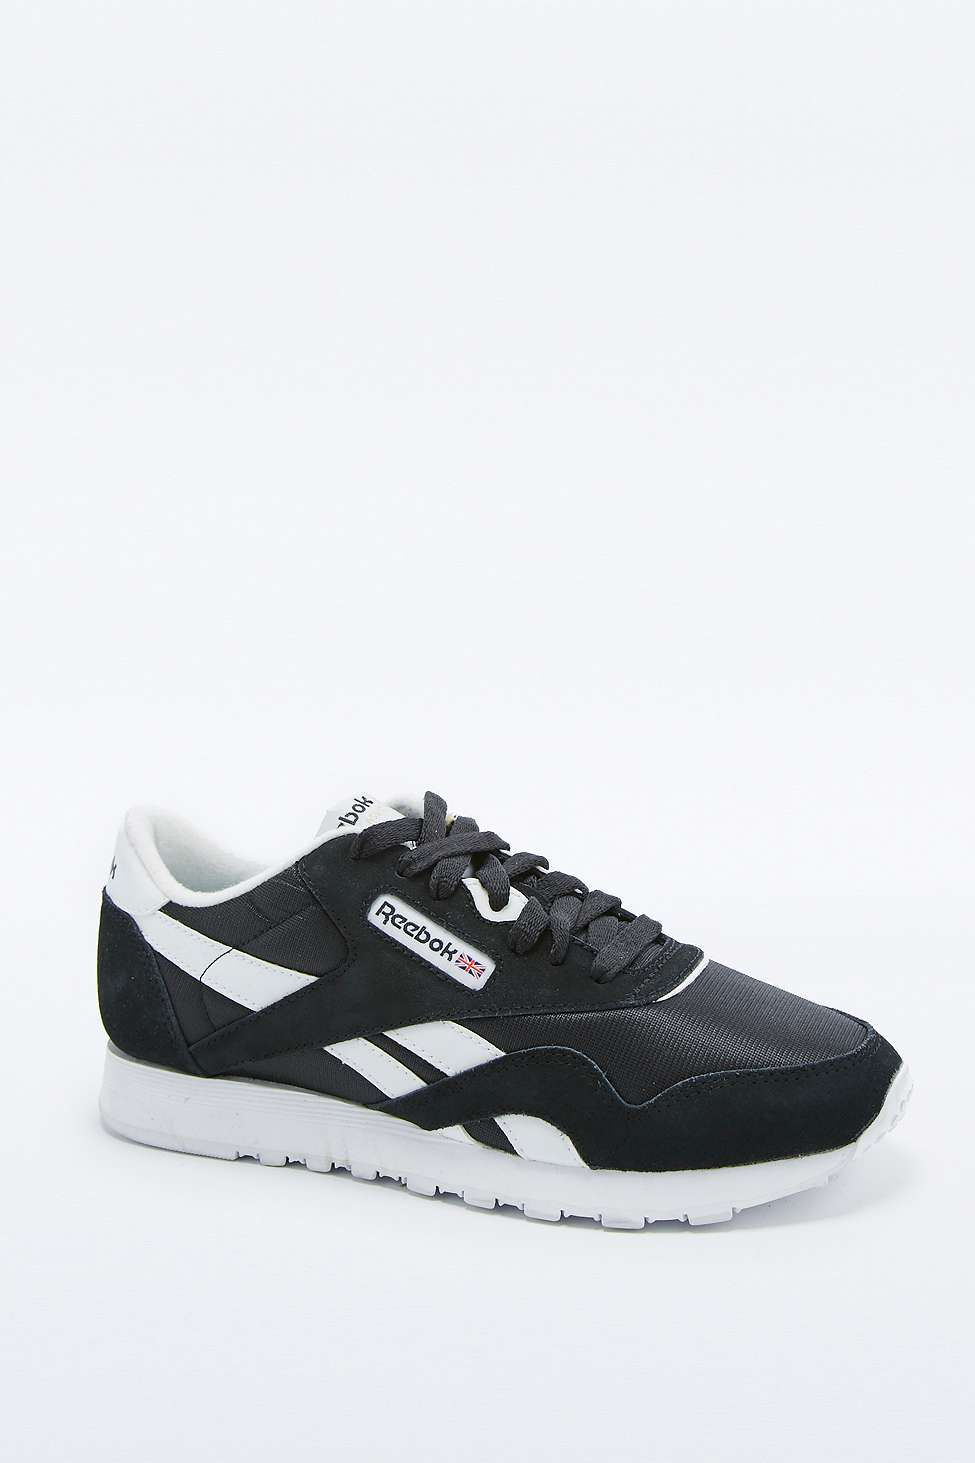 Reebok Men's Classic Black and White Trainers